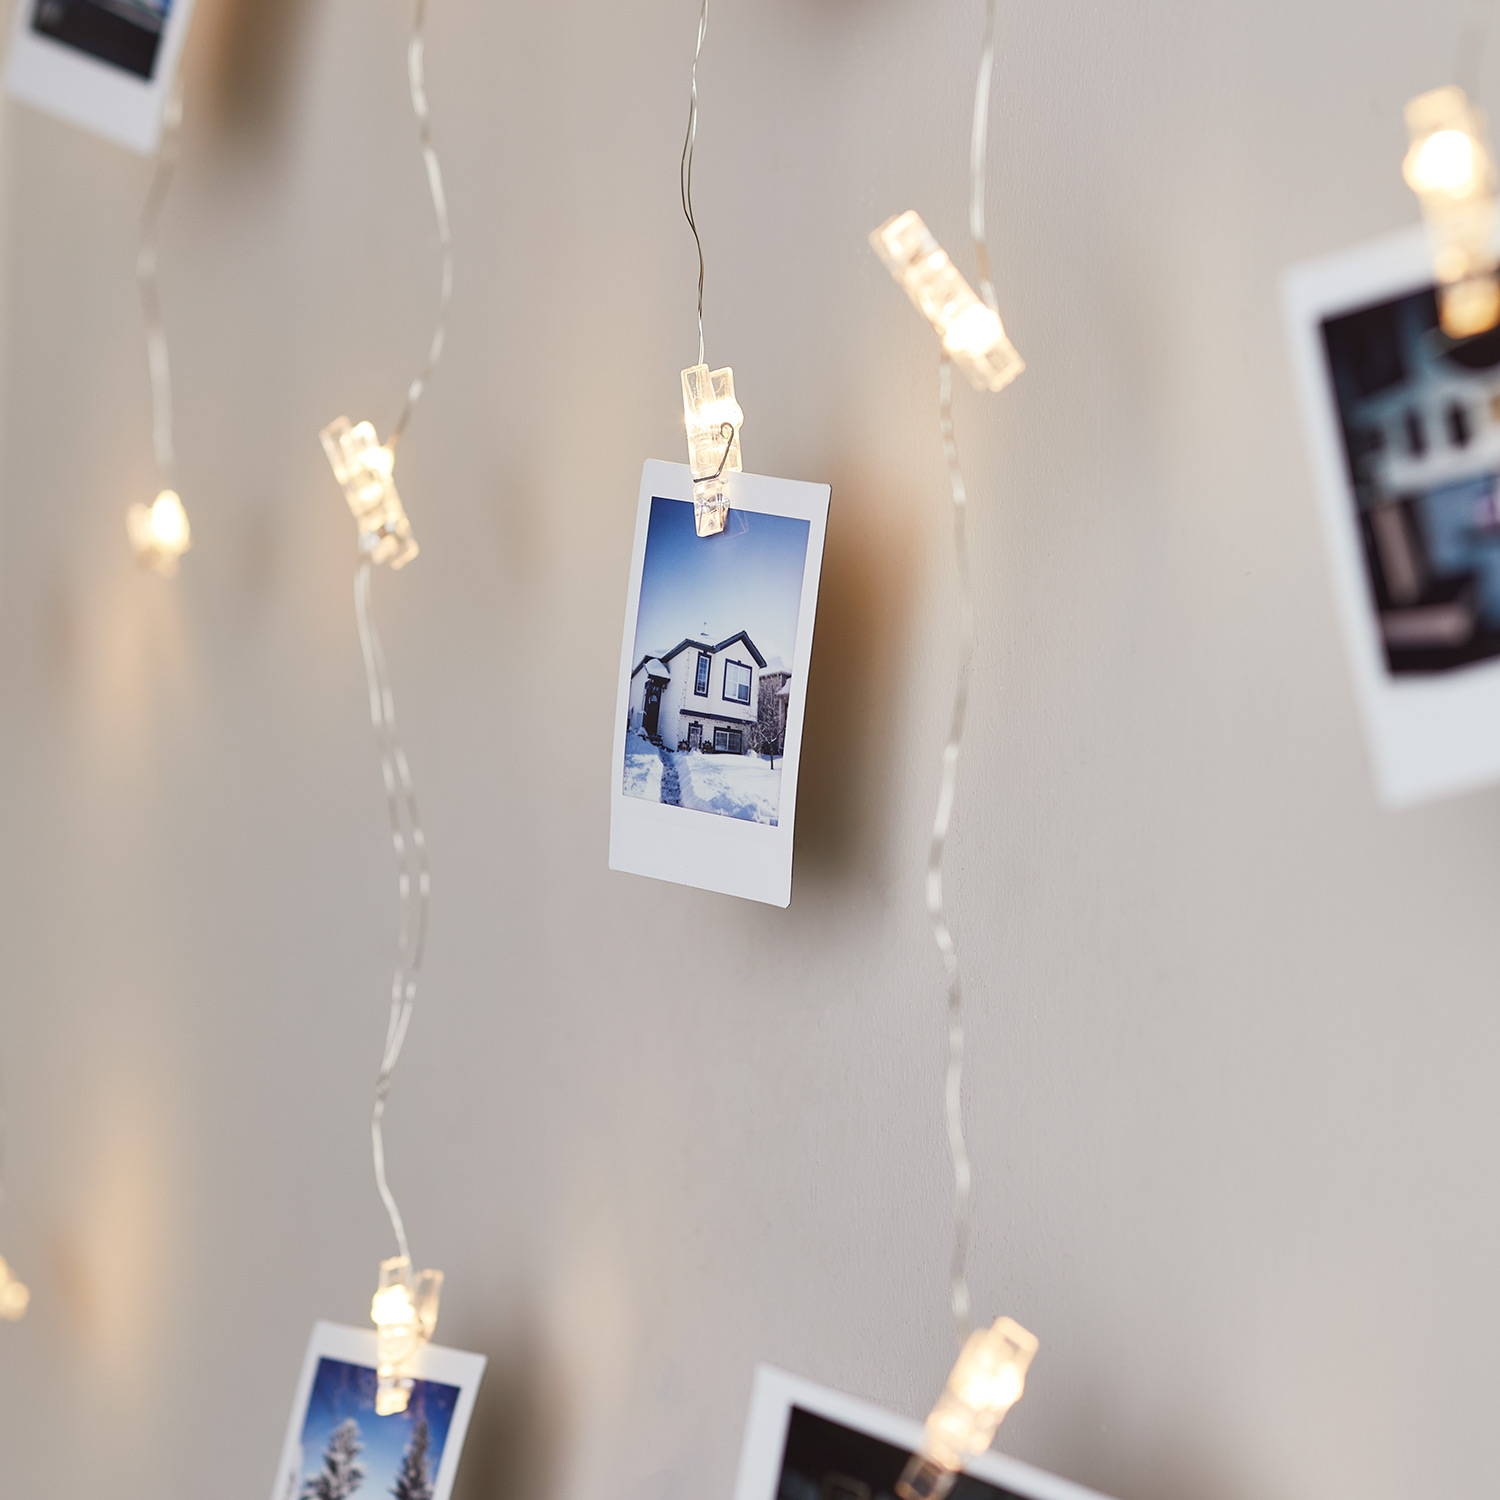 Close up of peg fairy lights illuminated draped across wall with images attached